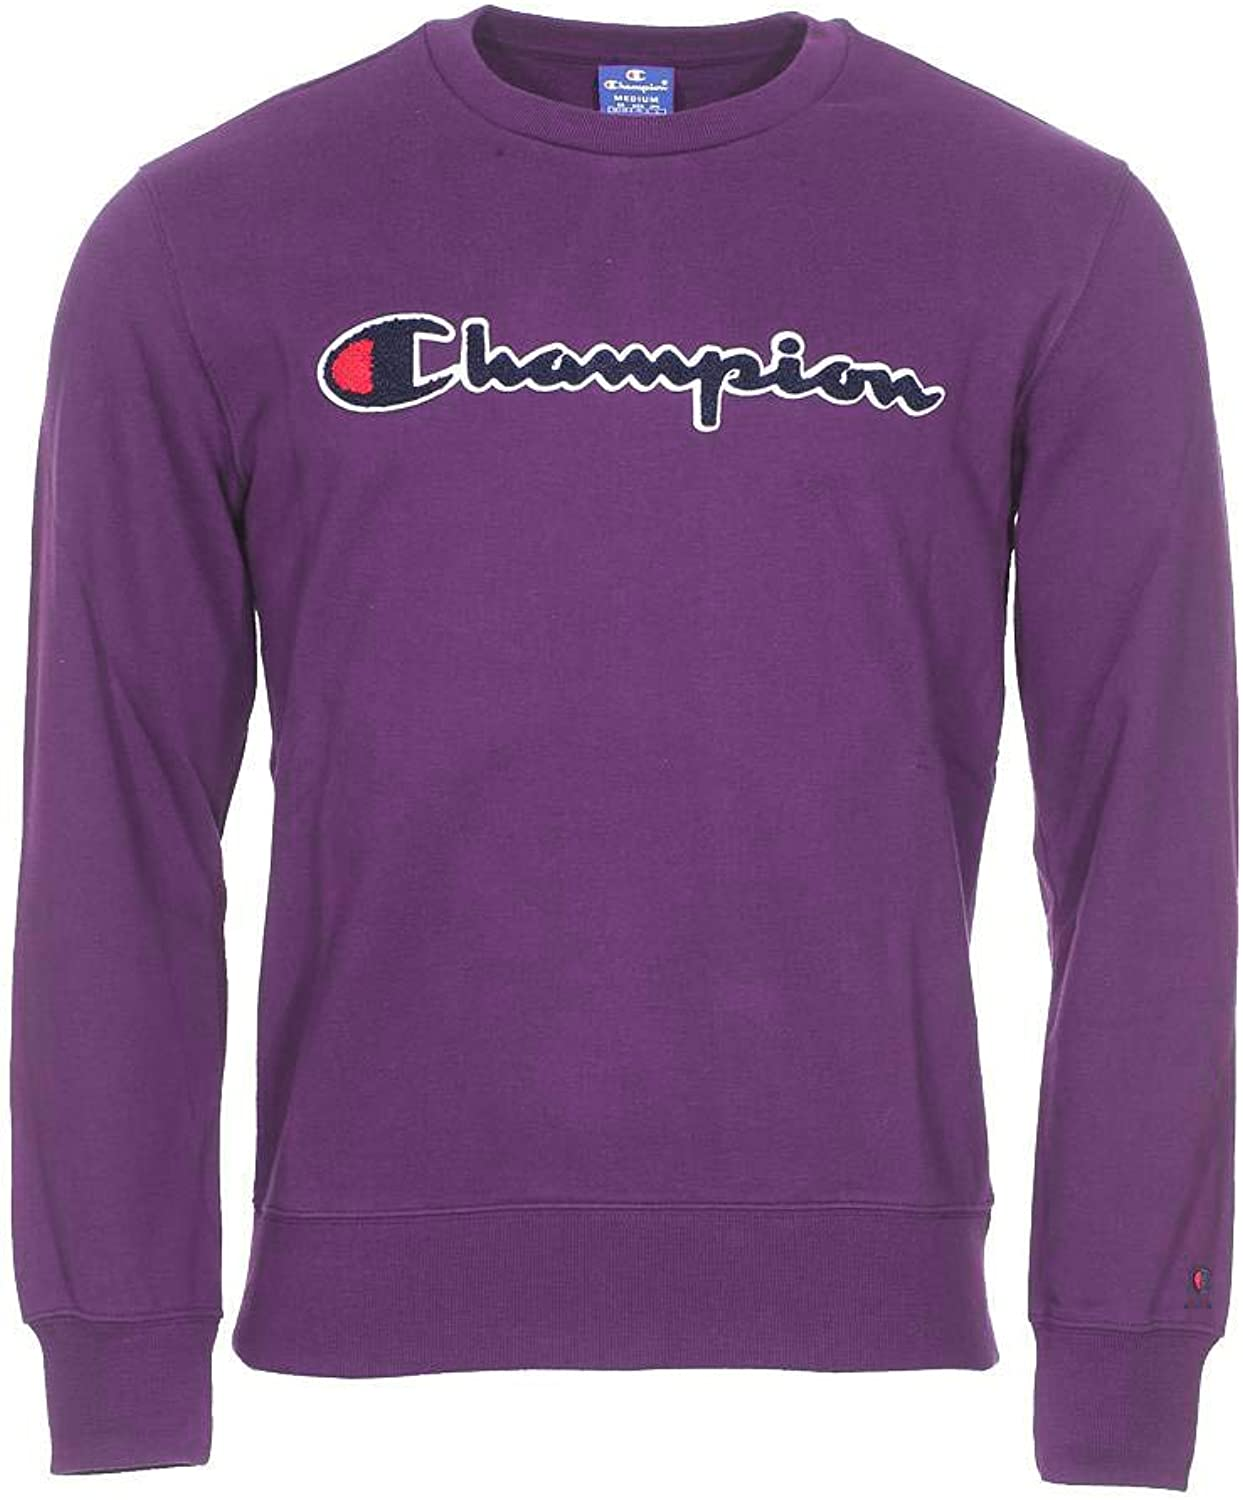 Champion Sweater Logo Purple L (Large)